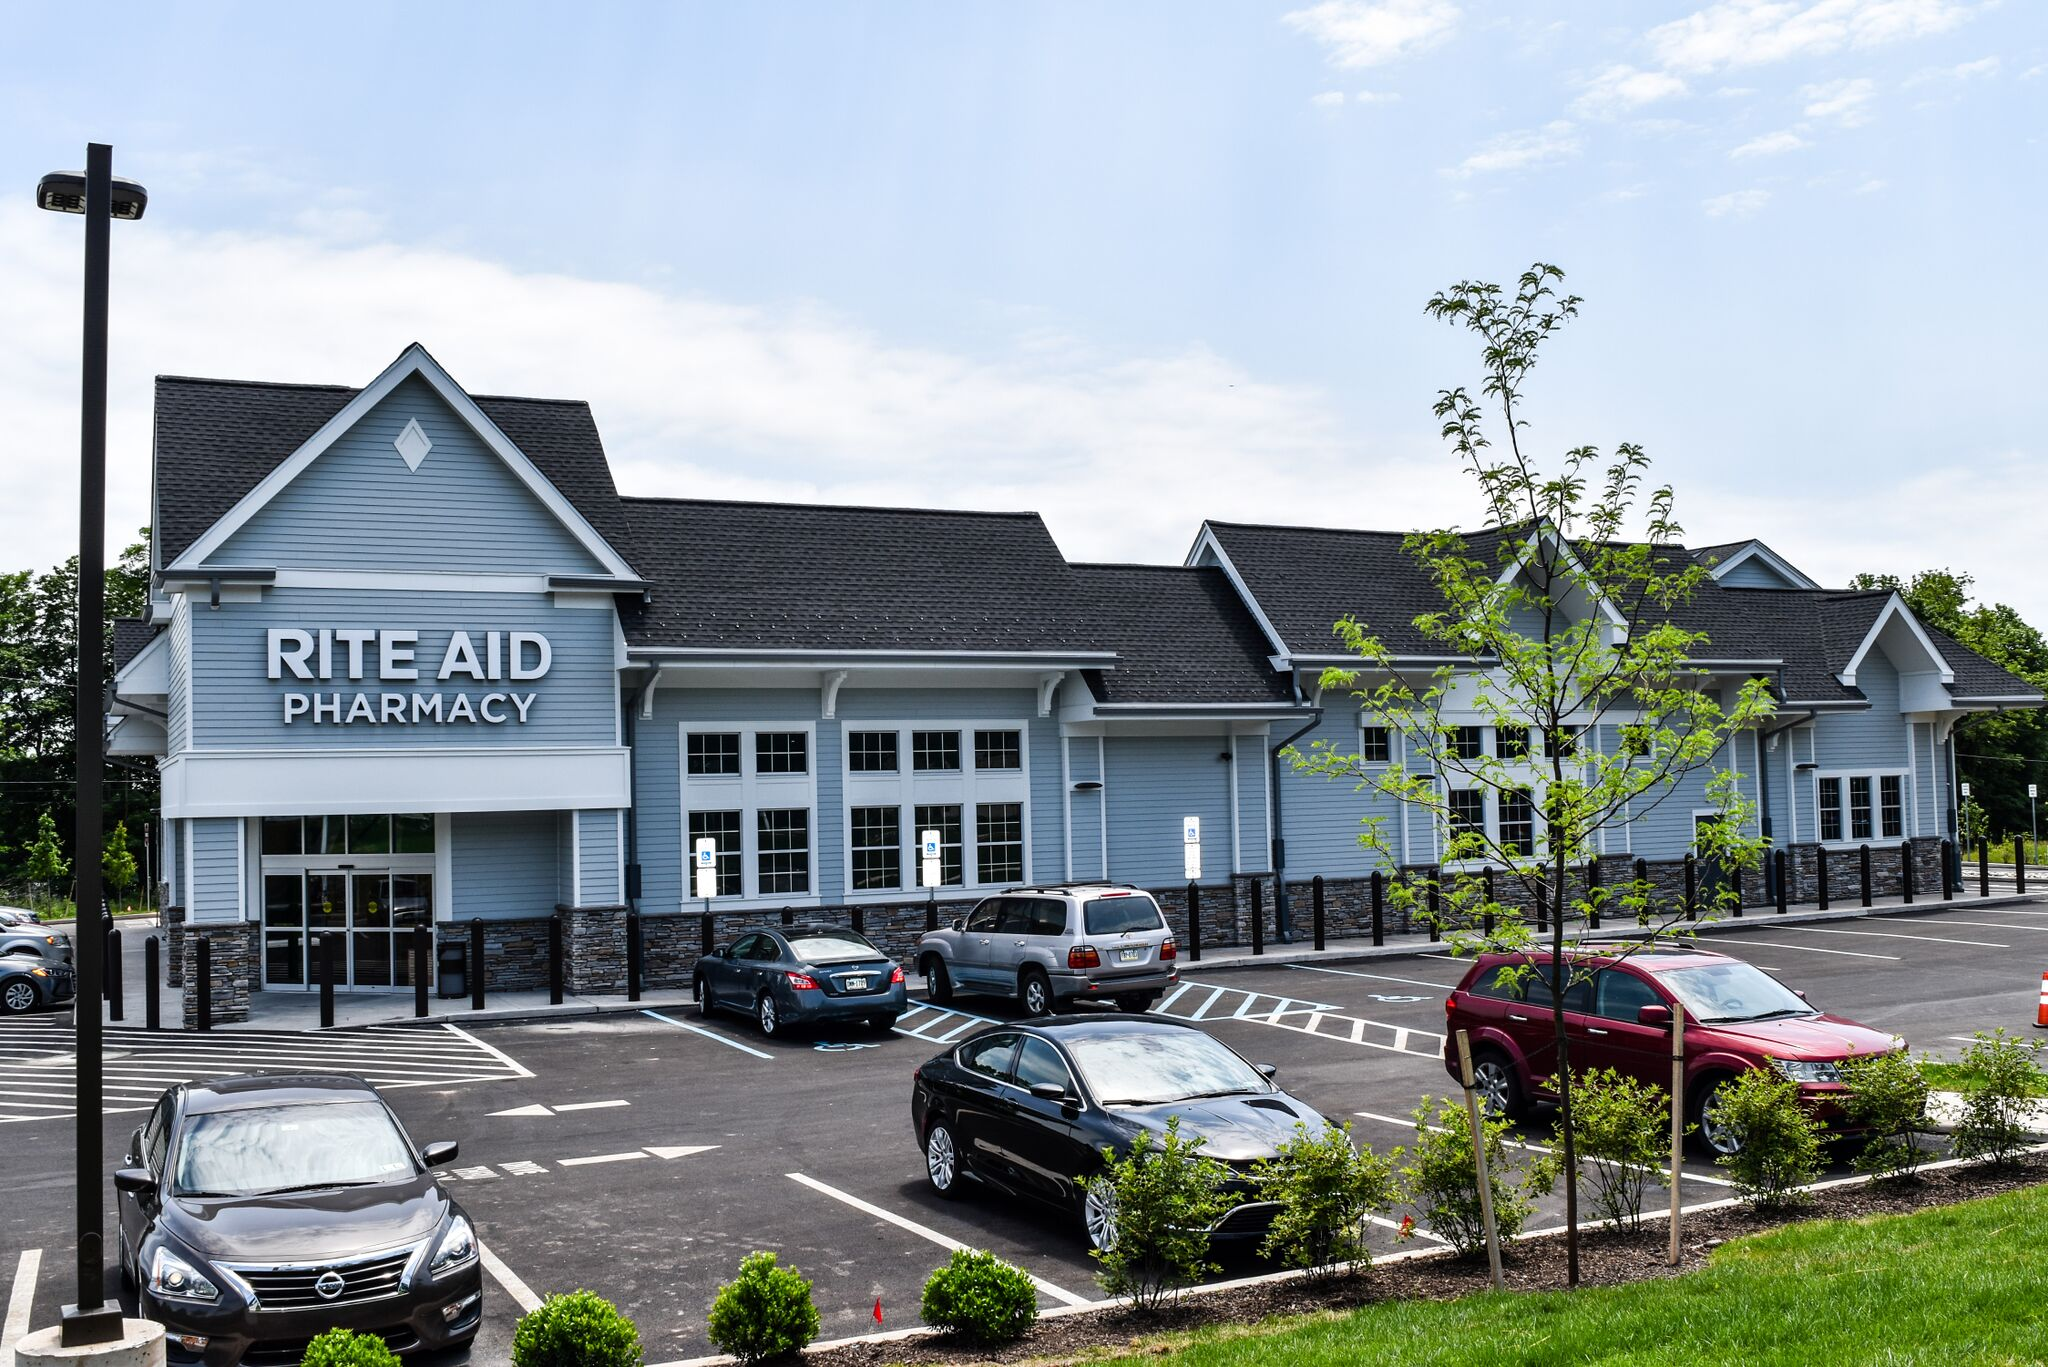 Rite aid pharmacy is a drugstore chain in the United States and a Fortune company. You will get information about Rite aid pharmacy Today, Sunday, What time does Rite aid pharmacy Open/ closed. You can also find out the Rite aid pharmacy Near me Locations and Holiday hours of Rite aid .